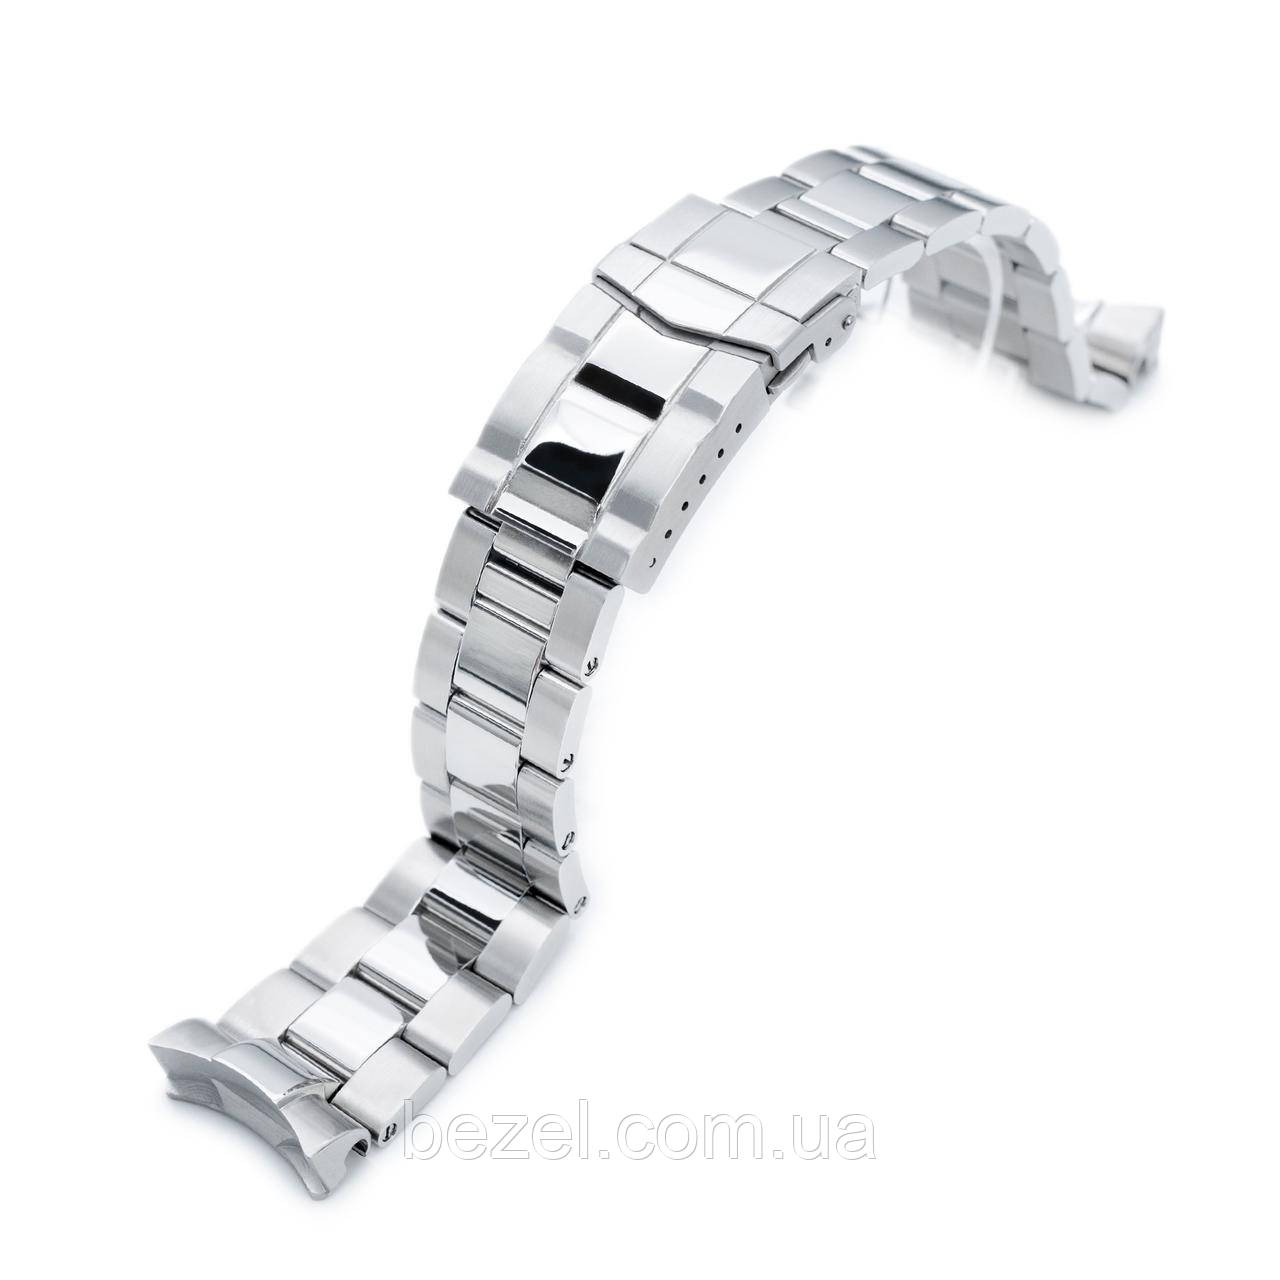 22mm Super Oyster watch band for SEIKO Diver SKX007/009/011, Brushed & Polished Submariner Clasp